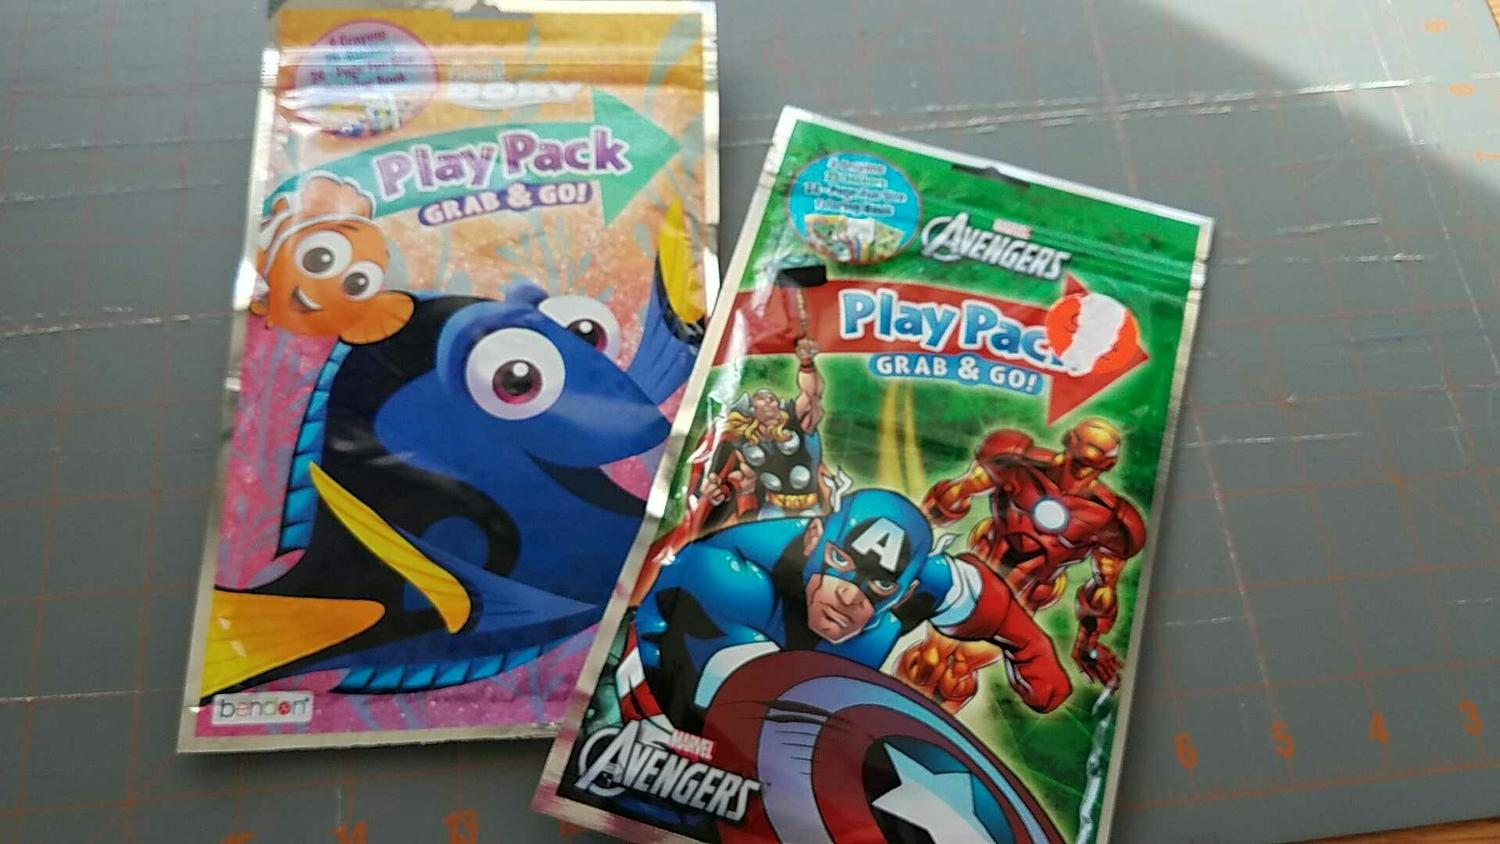 Best unopened play packs for sale in manchester new for Craft stores manchester nh